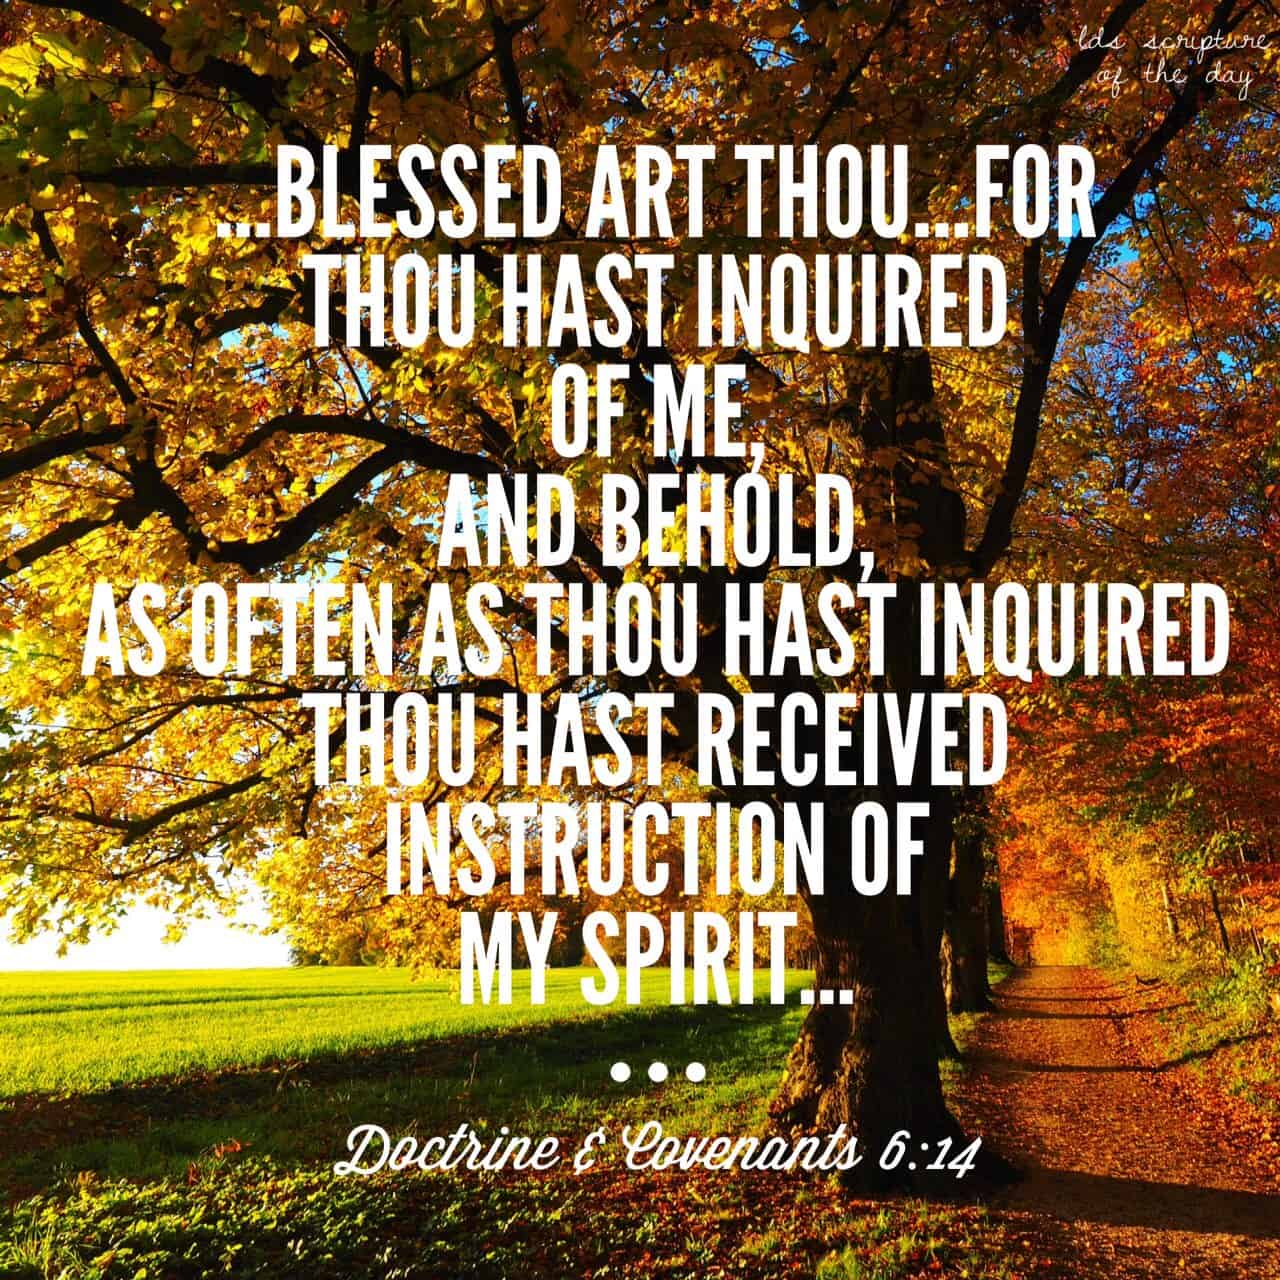 Verily, verily, I say unto thee, blessed art thou for what thou hast done; for thou hast inquired of me, and behold, as often as thou hast inquired thou hast received instruction of my Spirit.... Doctrine & Covenants 6:14